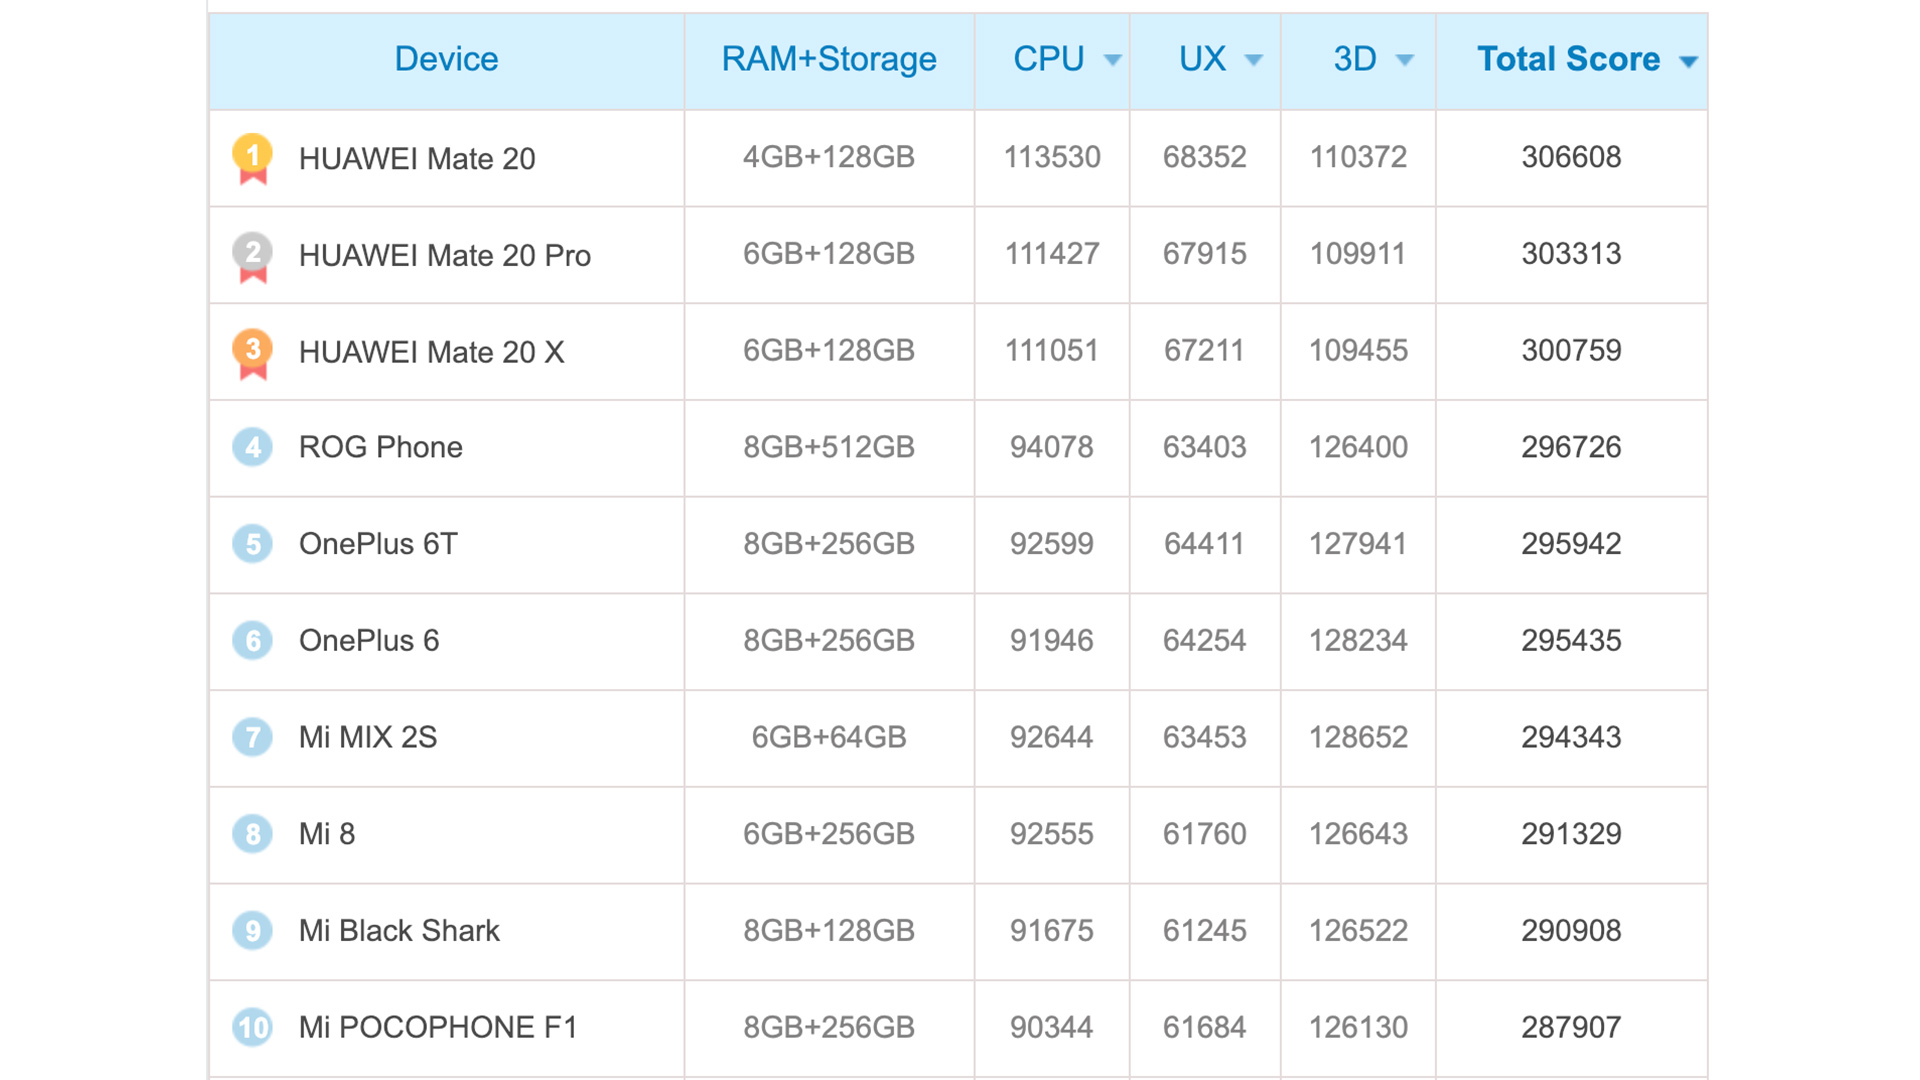 Antutu benchmark results for the Qualcomm Snapdragon 855